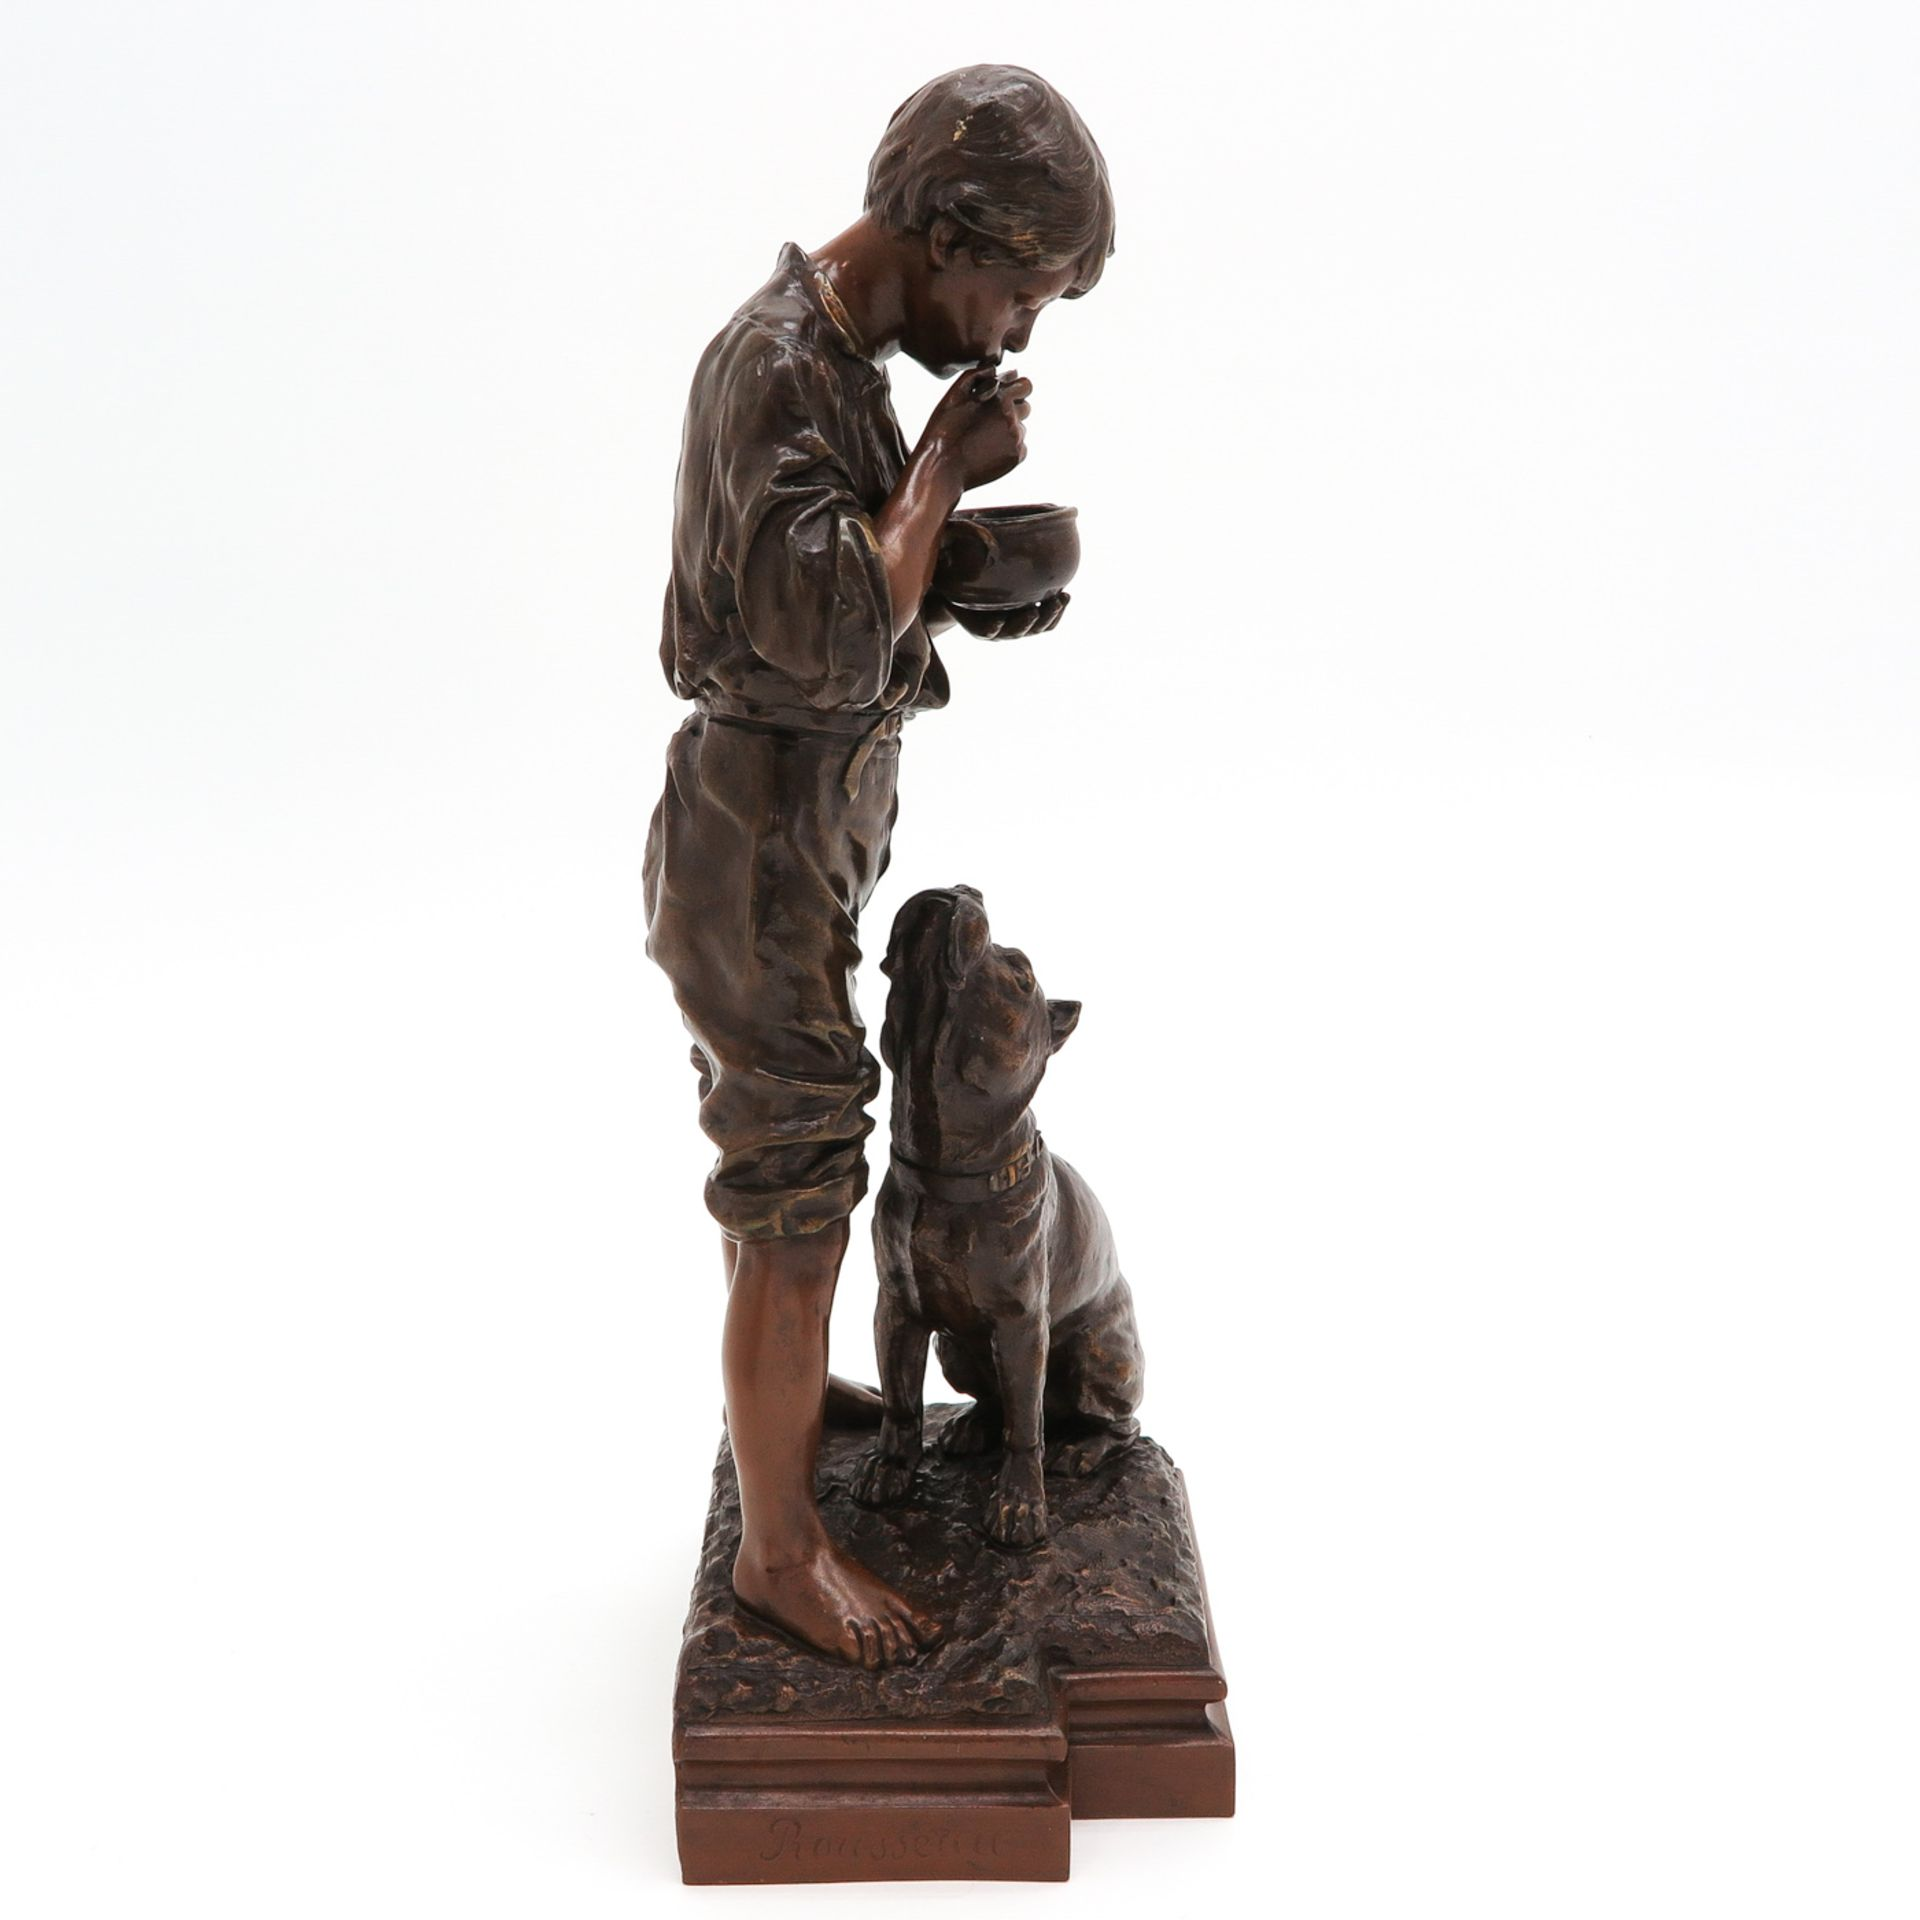 Los 1056 - A Sculpture of Boy with Dog